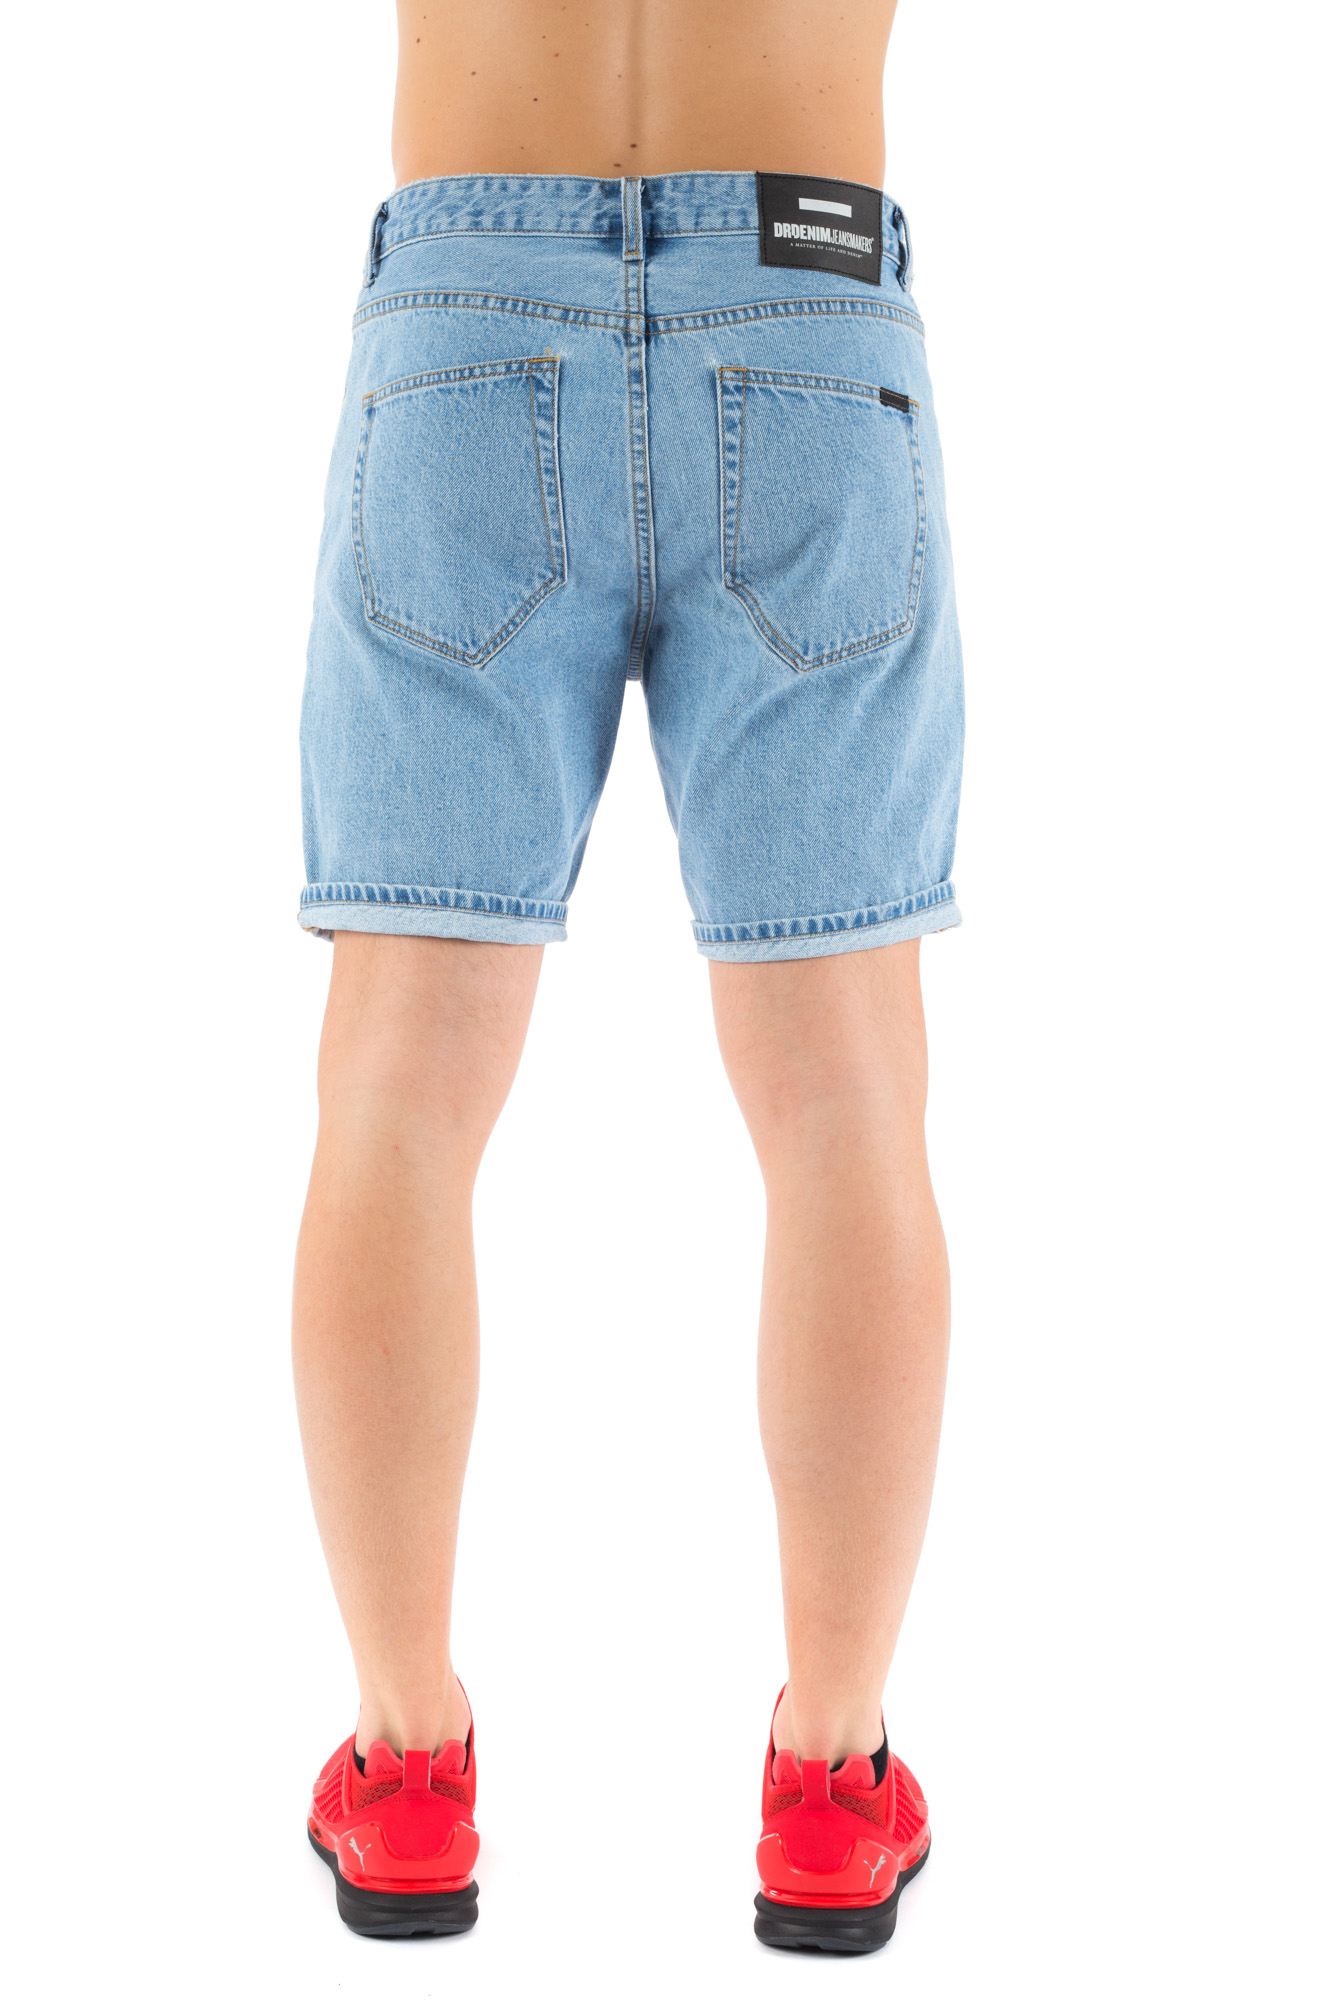 Dr. Denim - Shorts in light denim